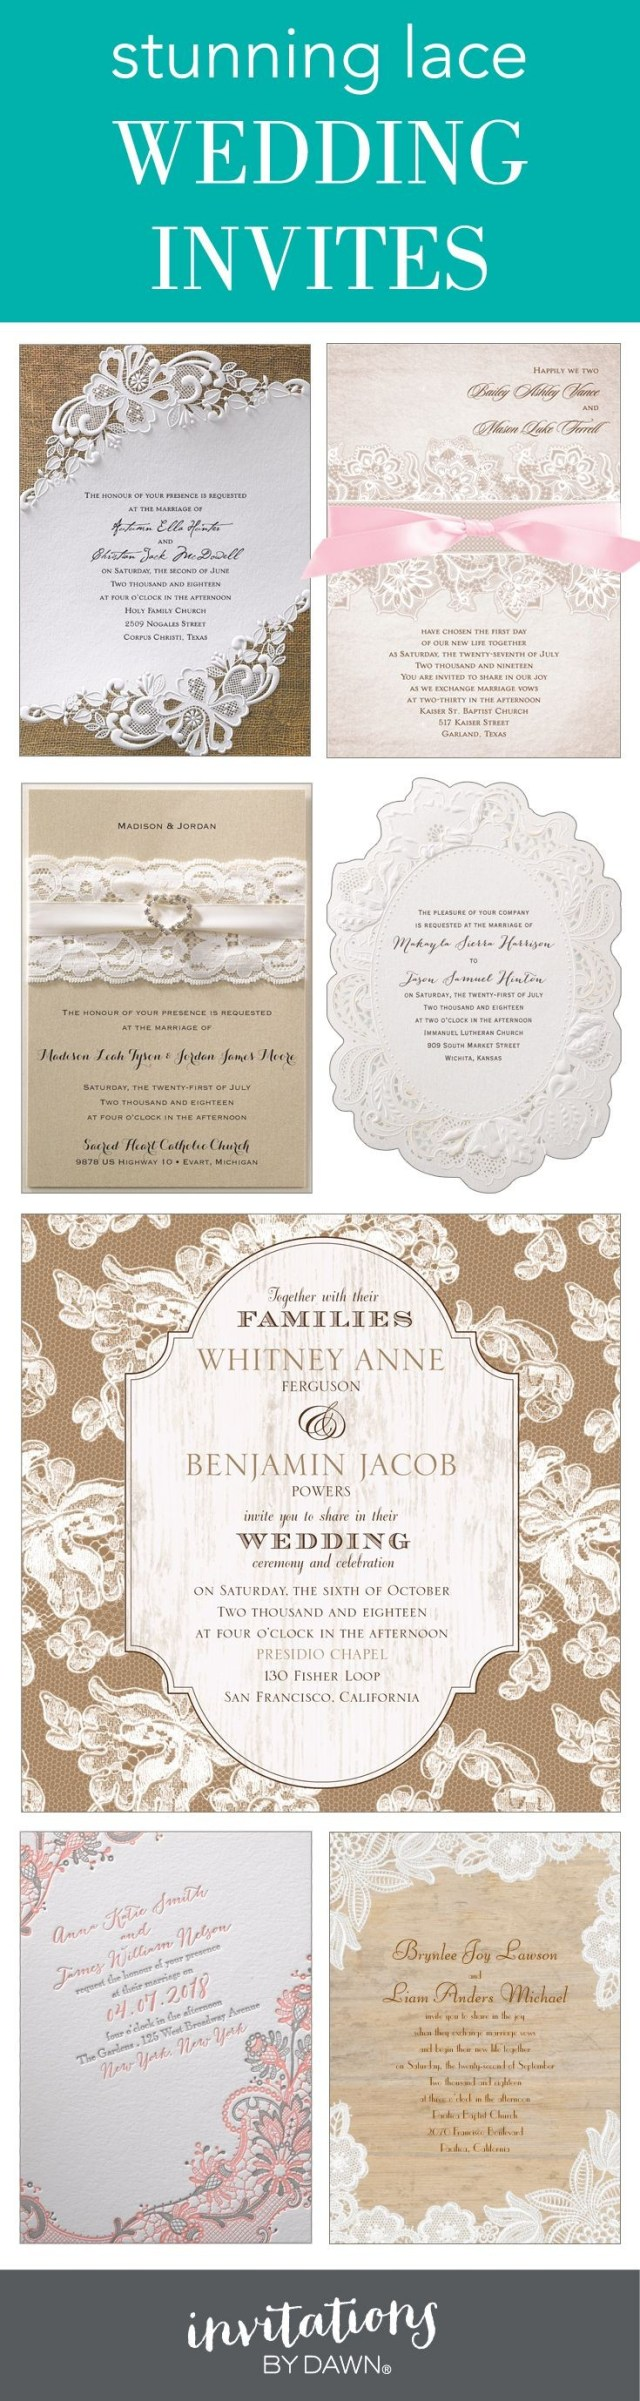 Camping Wedding Invitations Camping Wedding Invitations Fresh Invitation Homes Stock Price